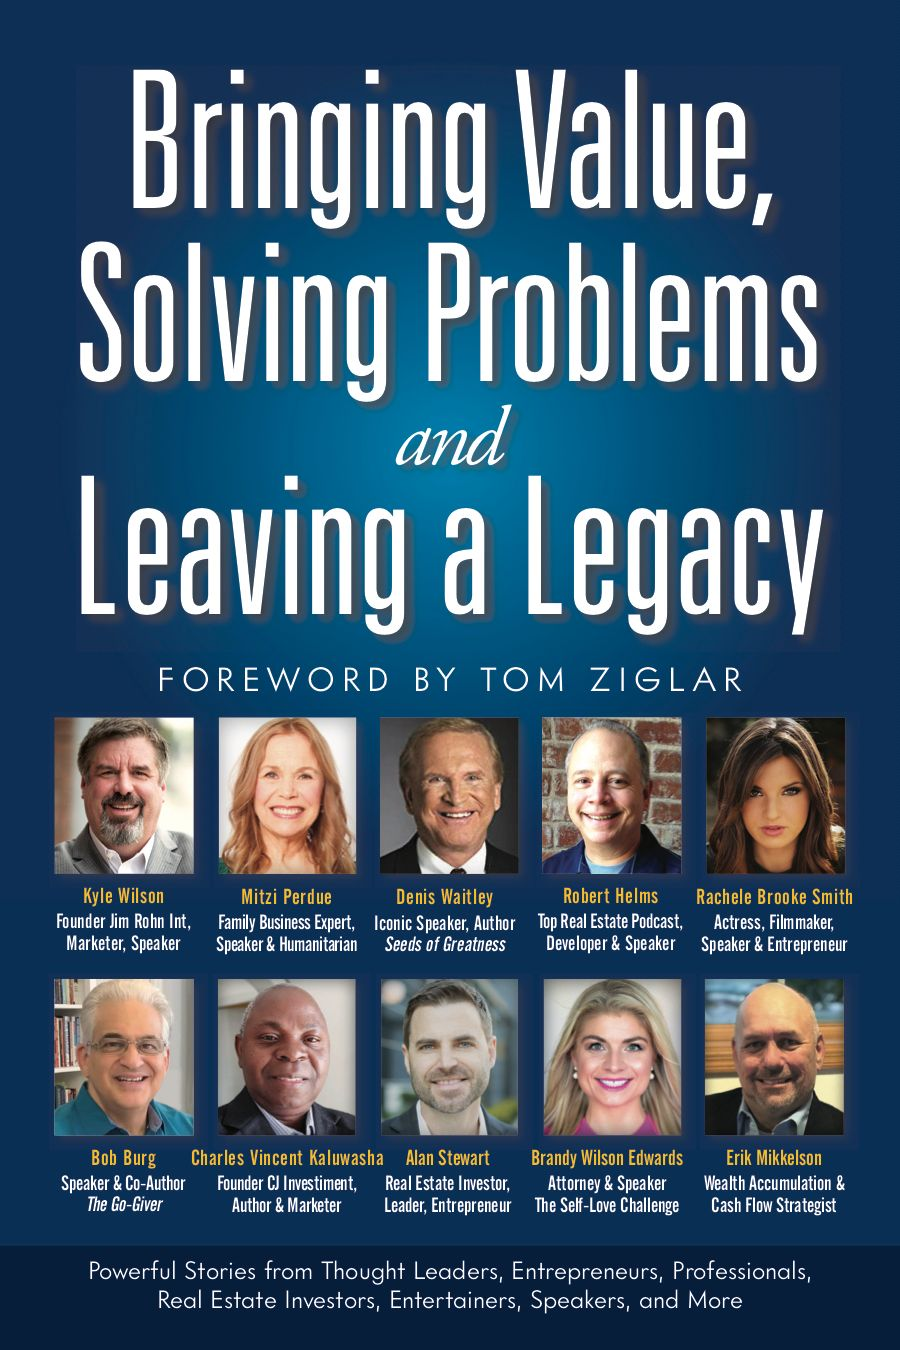 Bringing Value, Solving Problems and Leaving a legacy